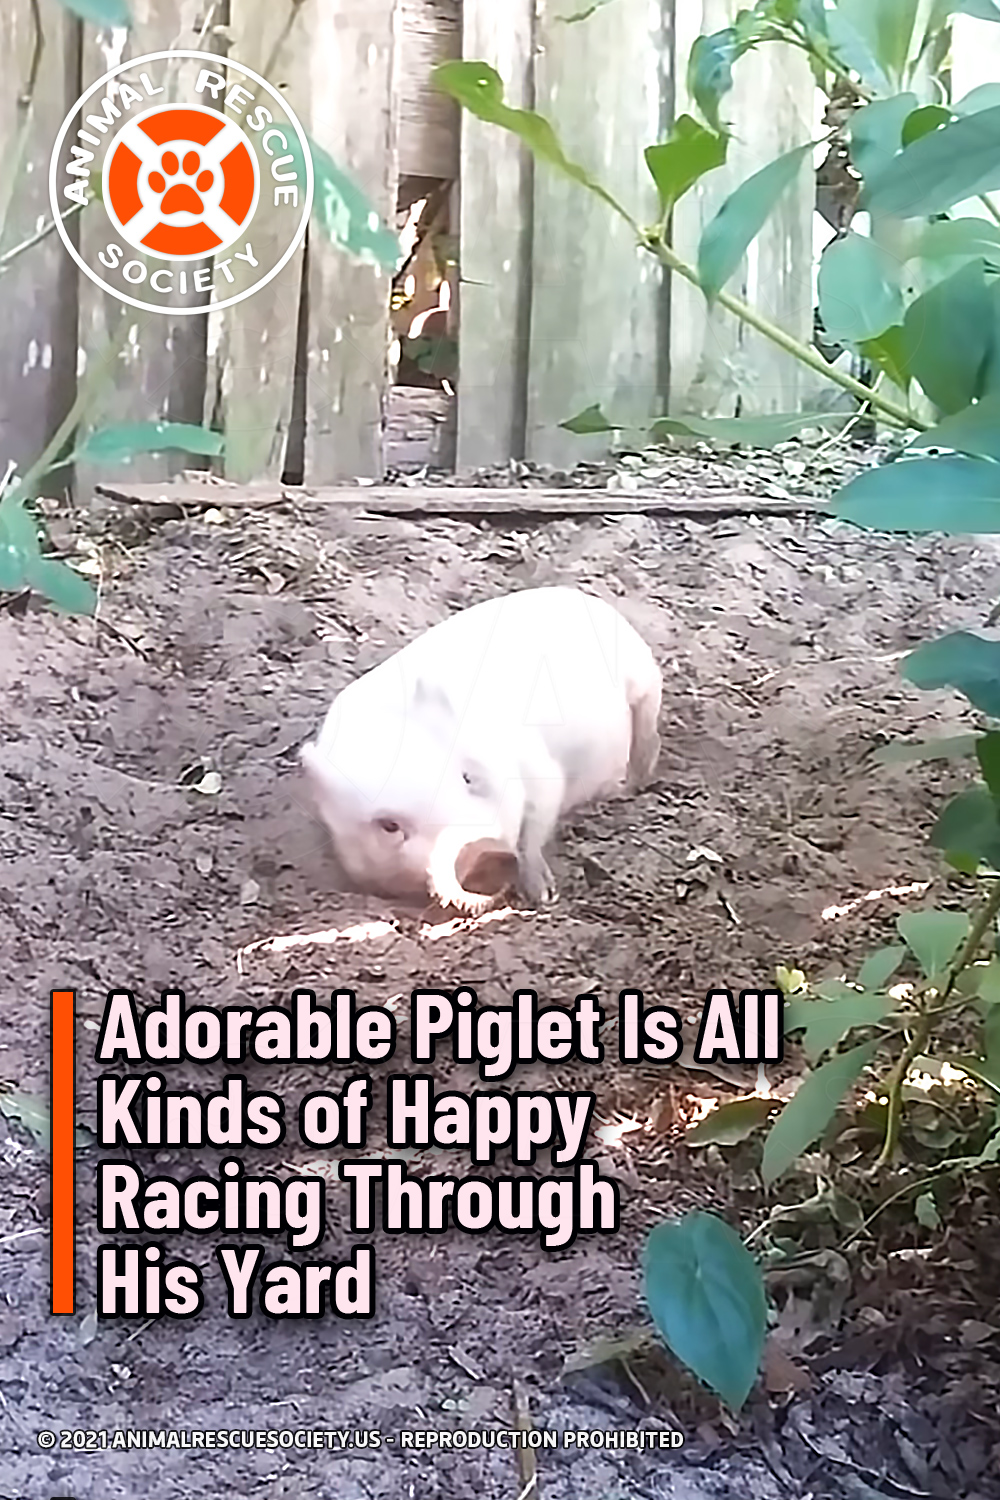 Adorable Piglet Is All Kinds of Happy Racing Through His Yard